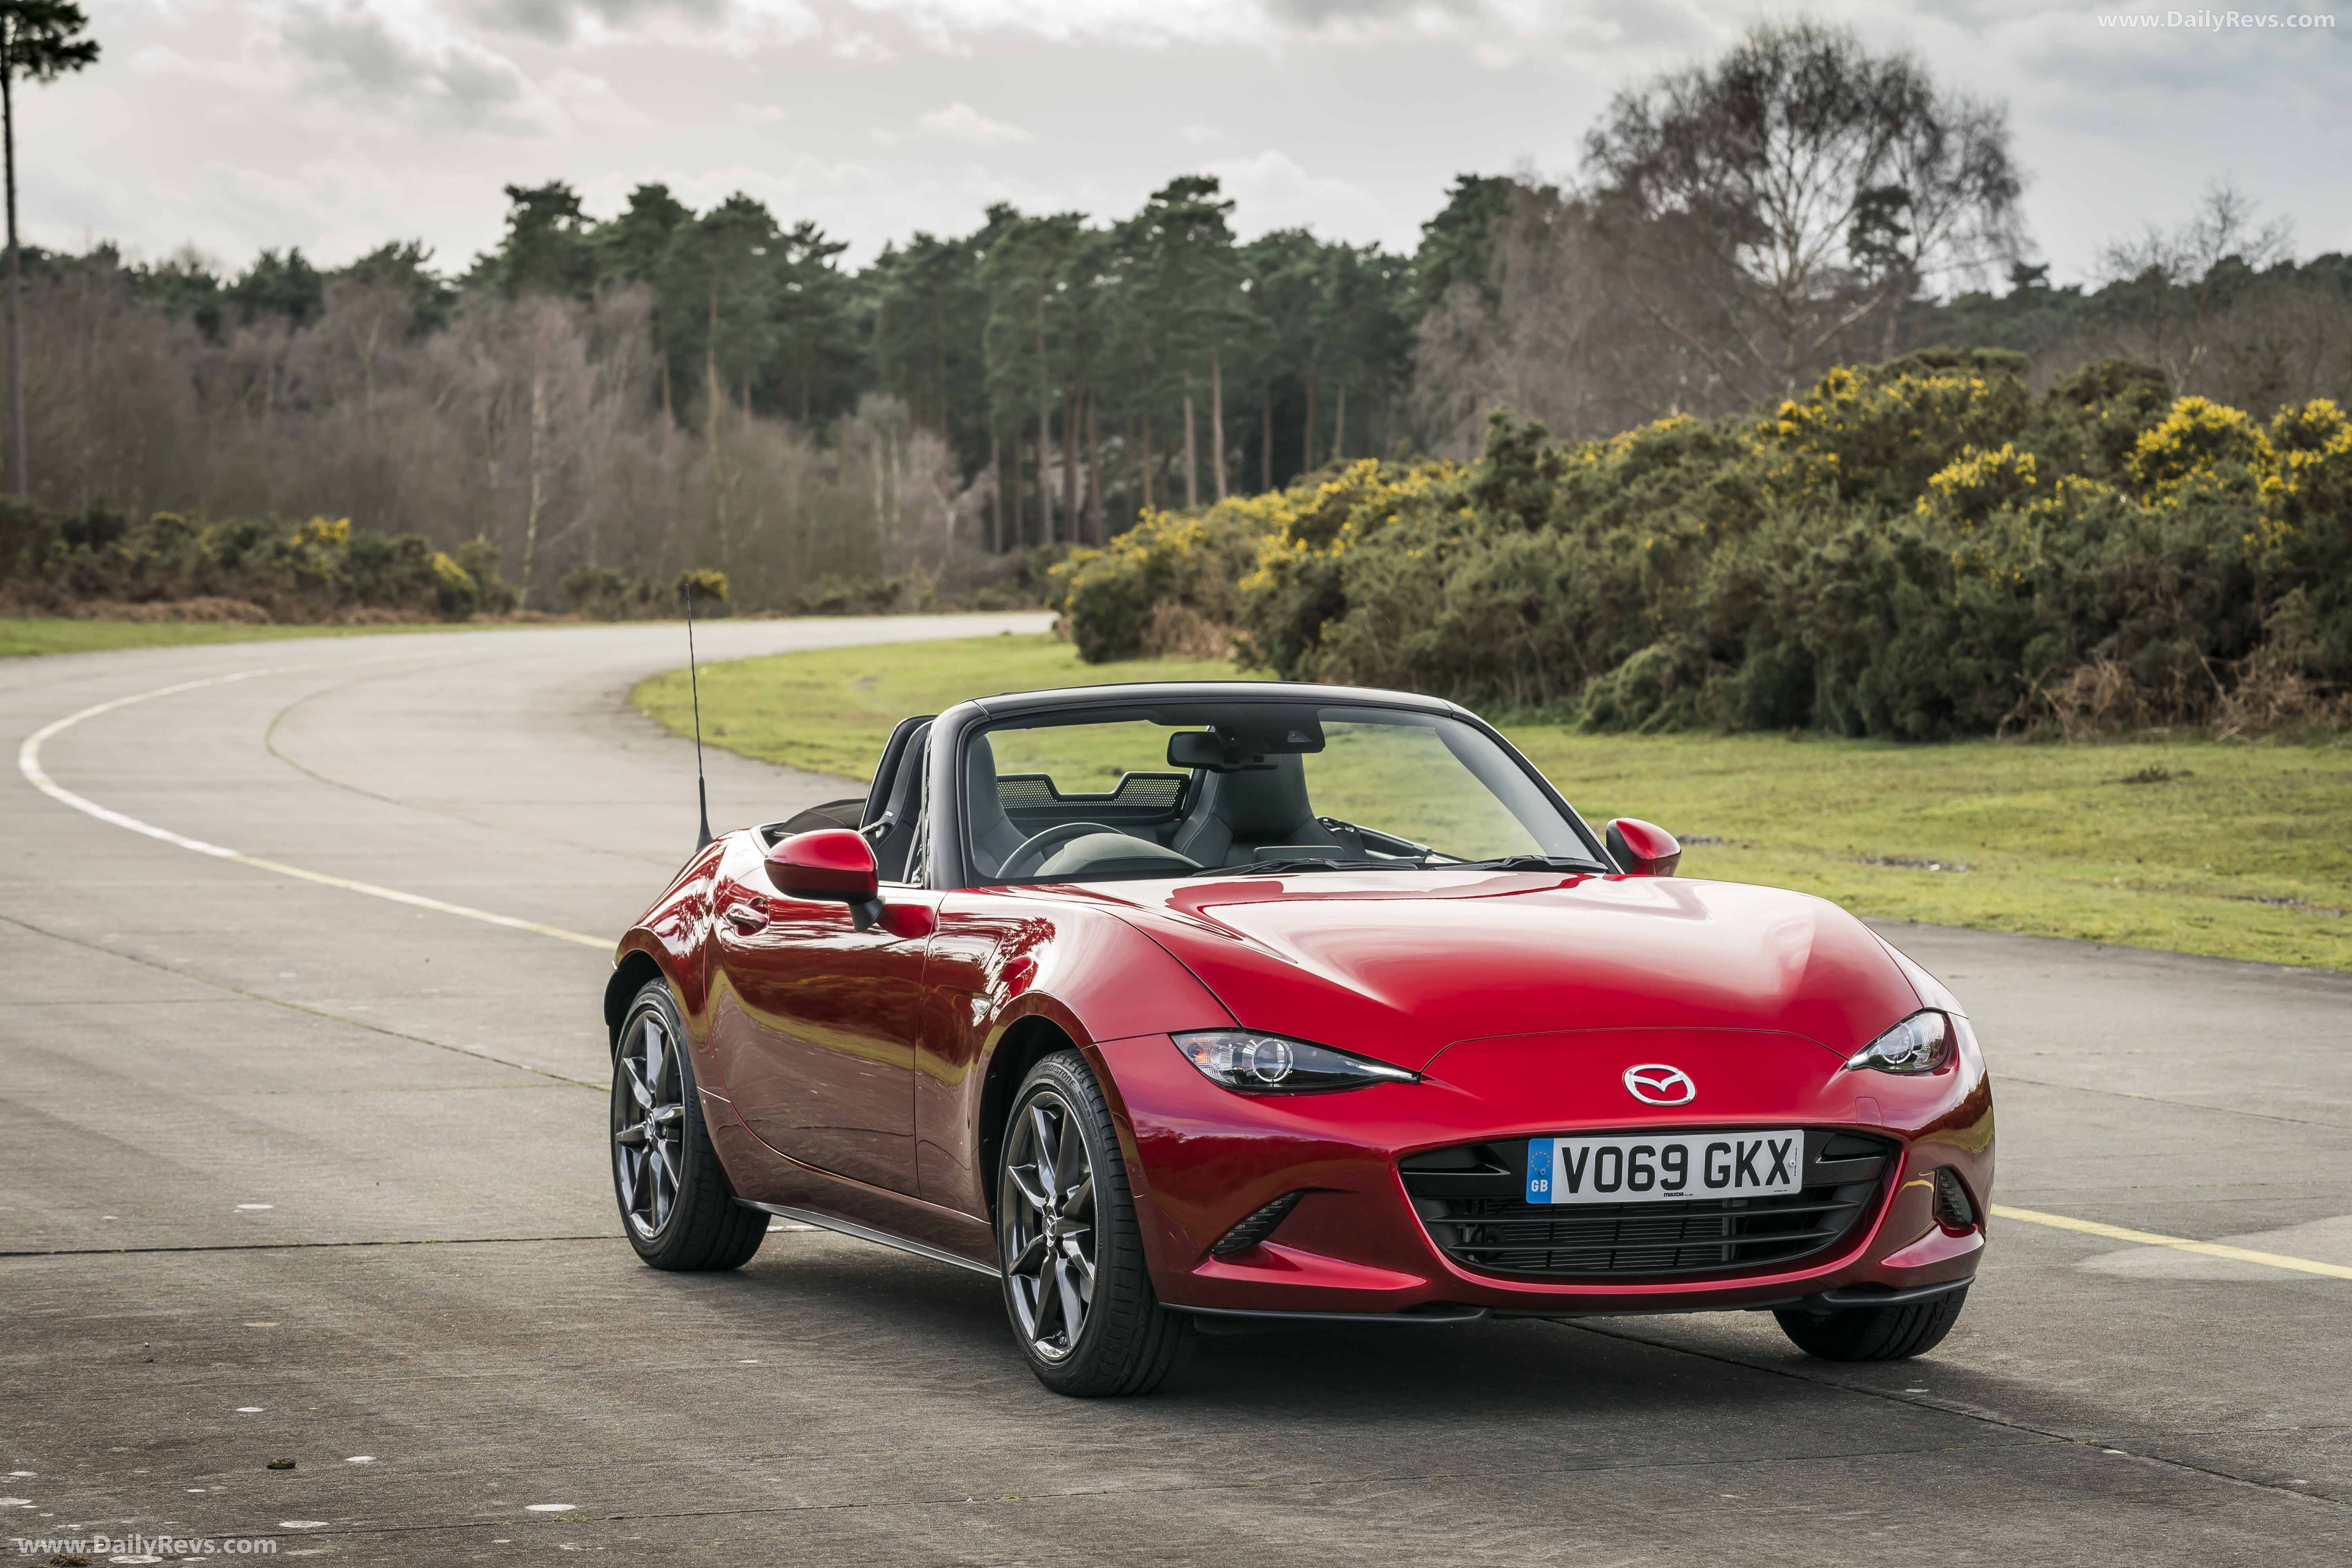 2020 Mazda MX-5 Price and Review